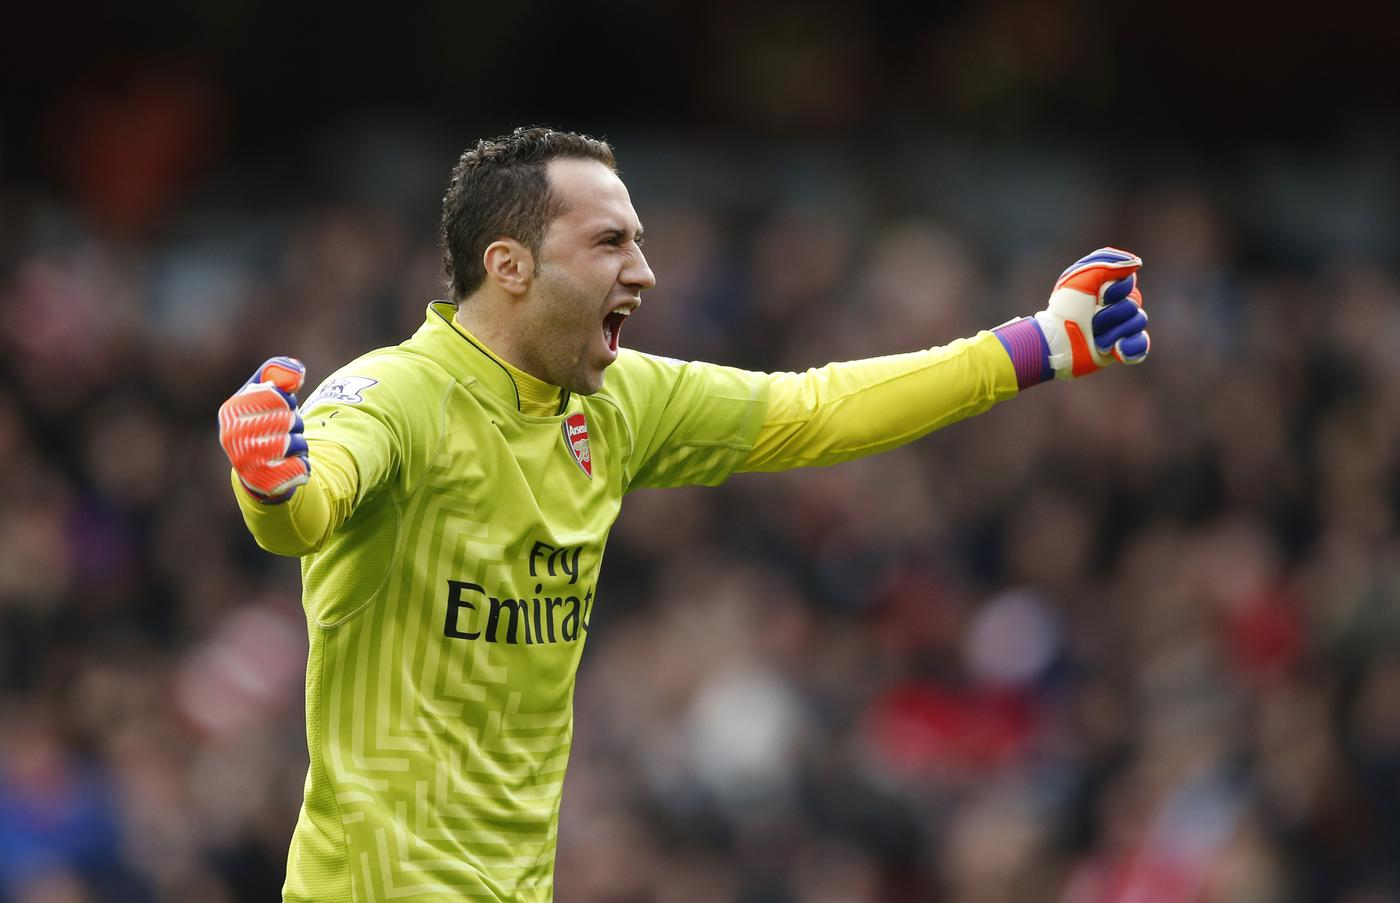 David Ospina to consider transfer away from Arsenal if left out for game v Bayern Munich – report